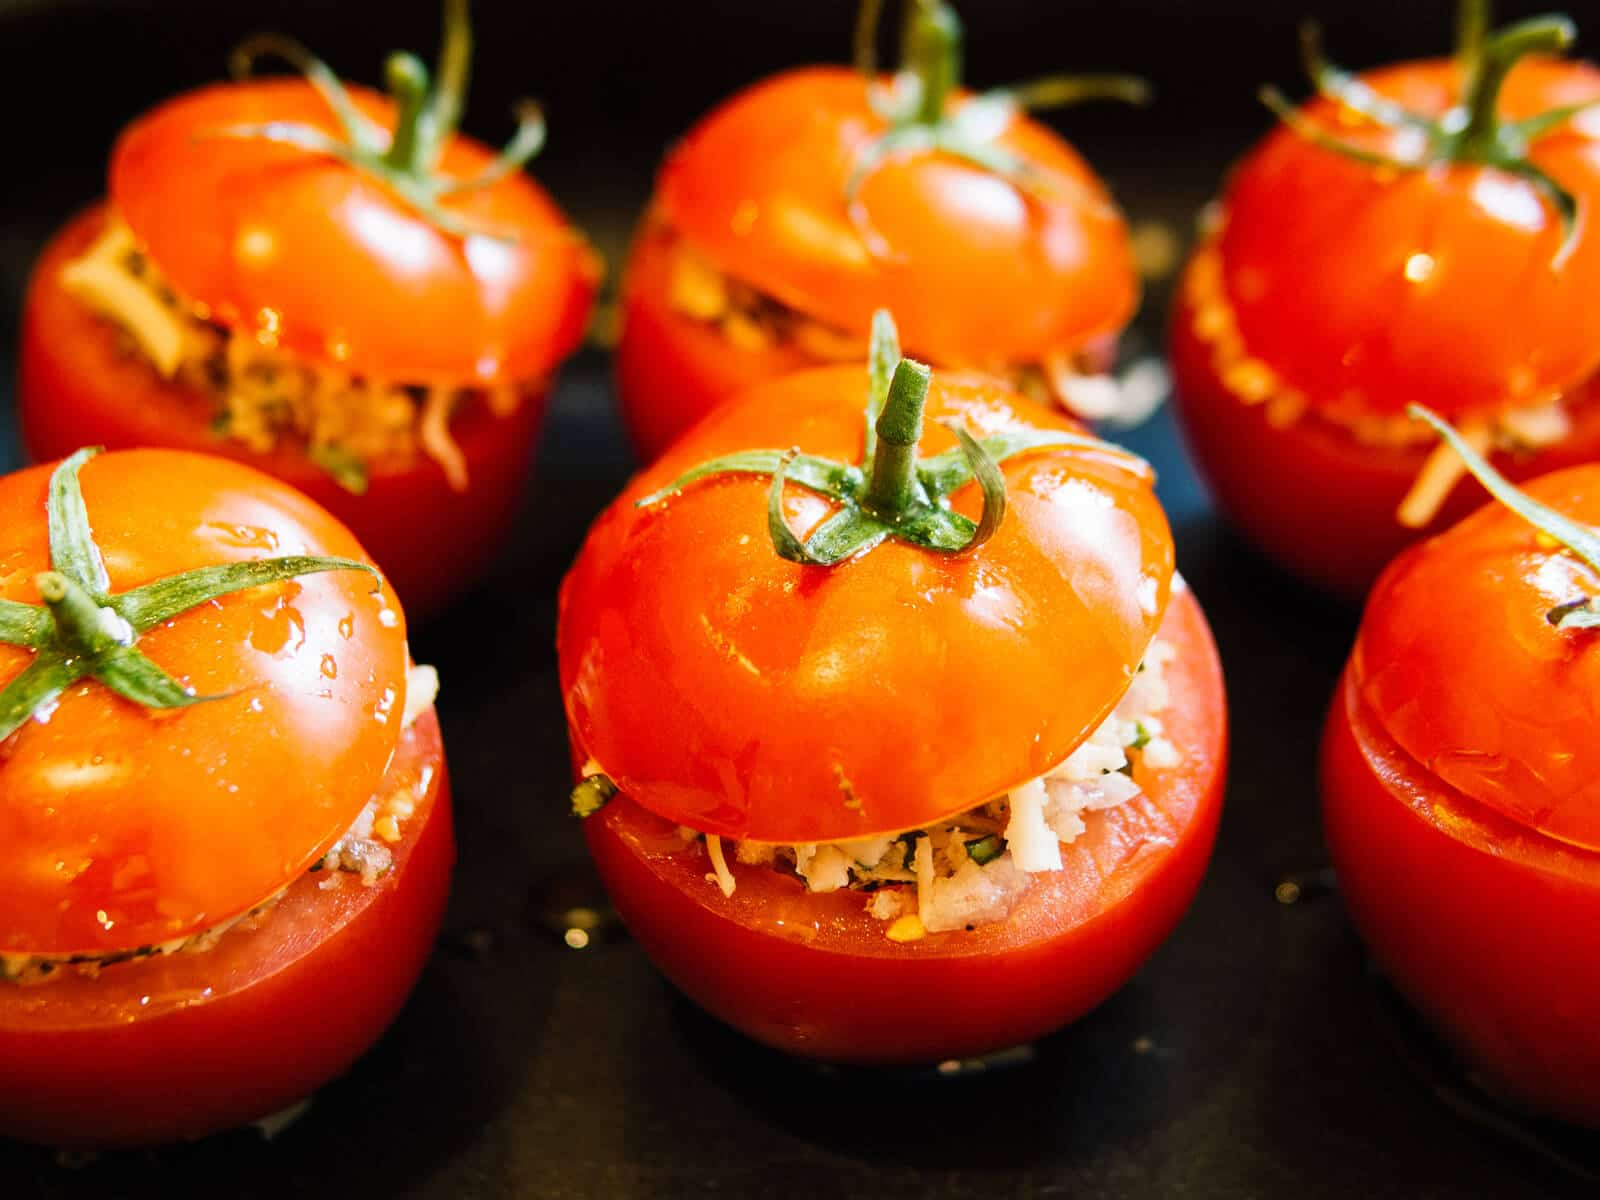 Plank-grilled stuffed tomatoes